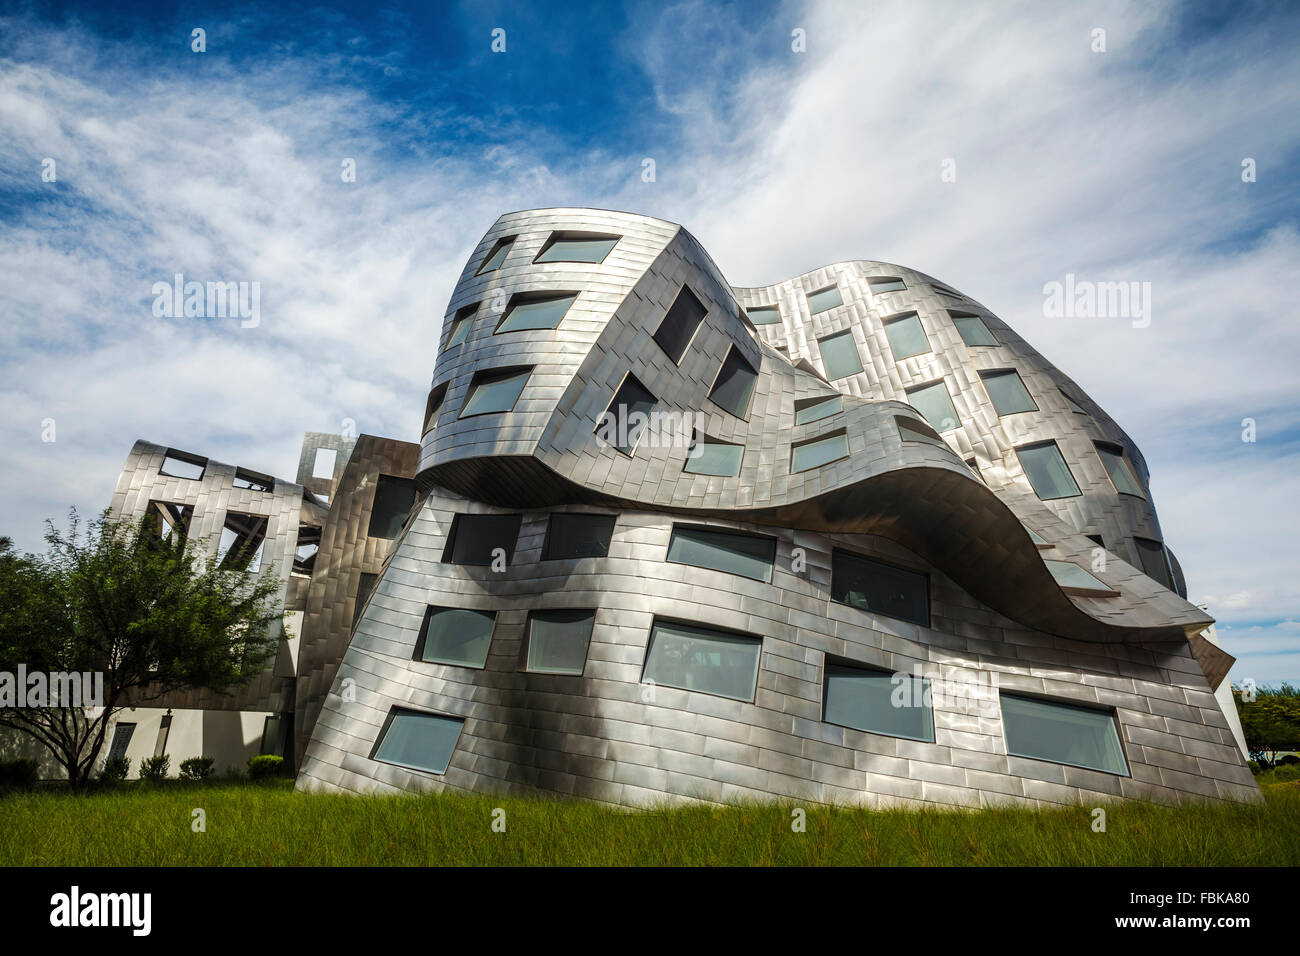 The Lou Ruvo Center for Brain Health, Cleveland Clinic, Las Vegas - Stock Image